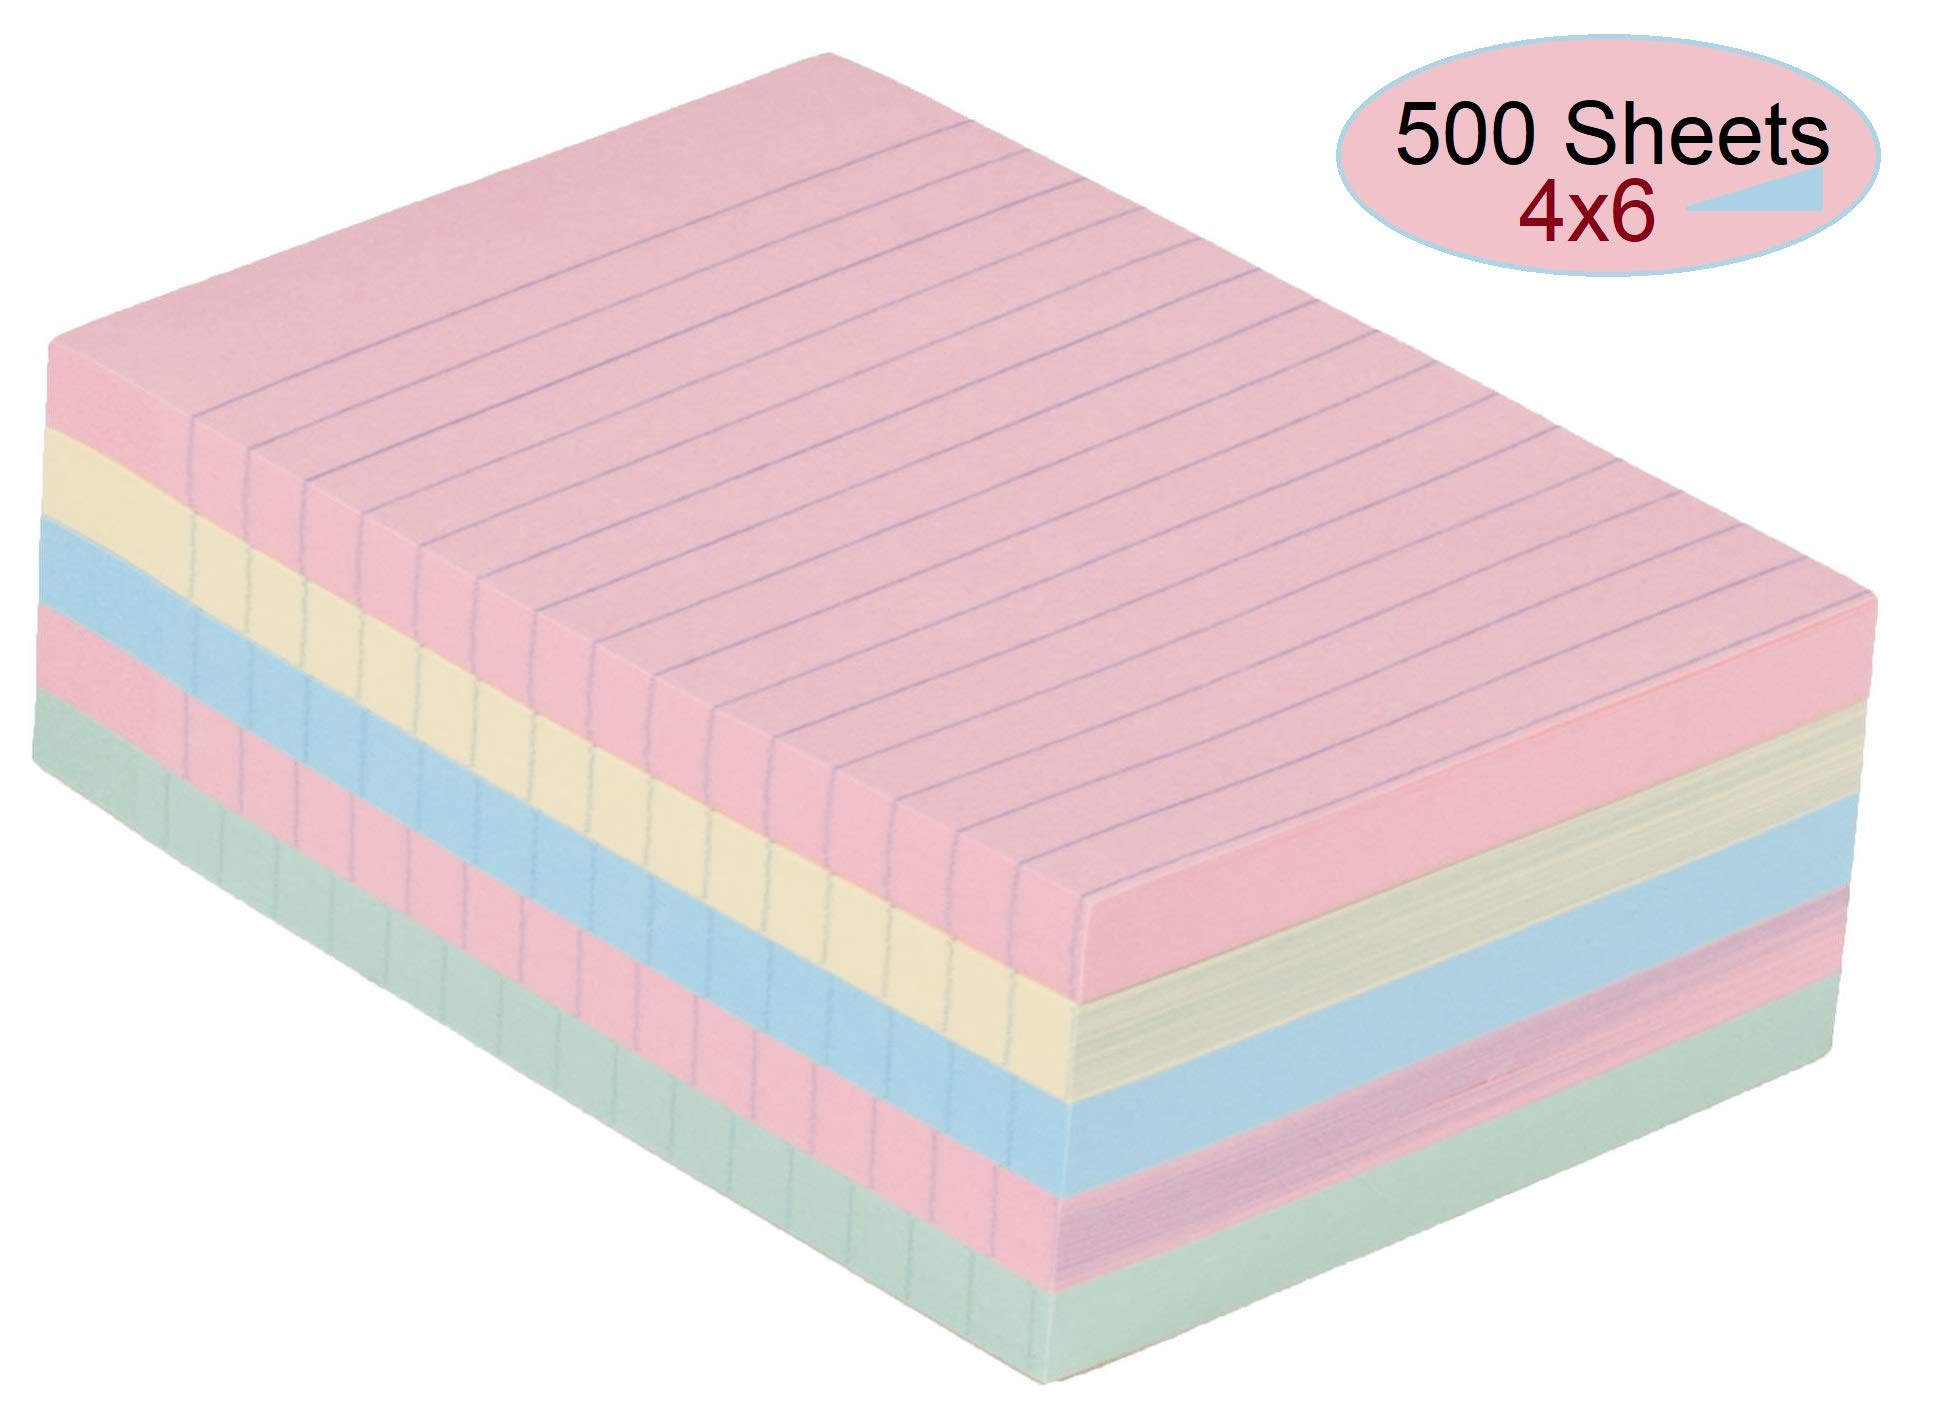 1InTheOffice Sticky Notes 4x6, Lined Assorted Pastel Color Self-Stick Notes 4'' x 6'' 100 Sheets - 5/Pack by 1InTheOffice